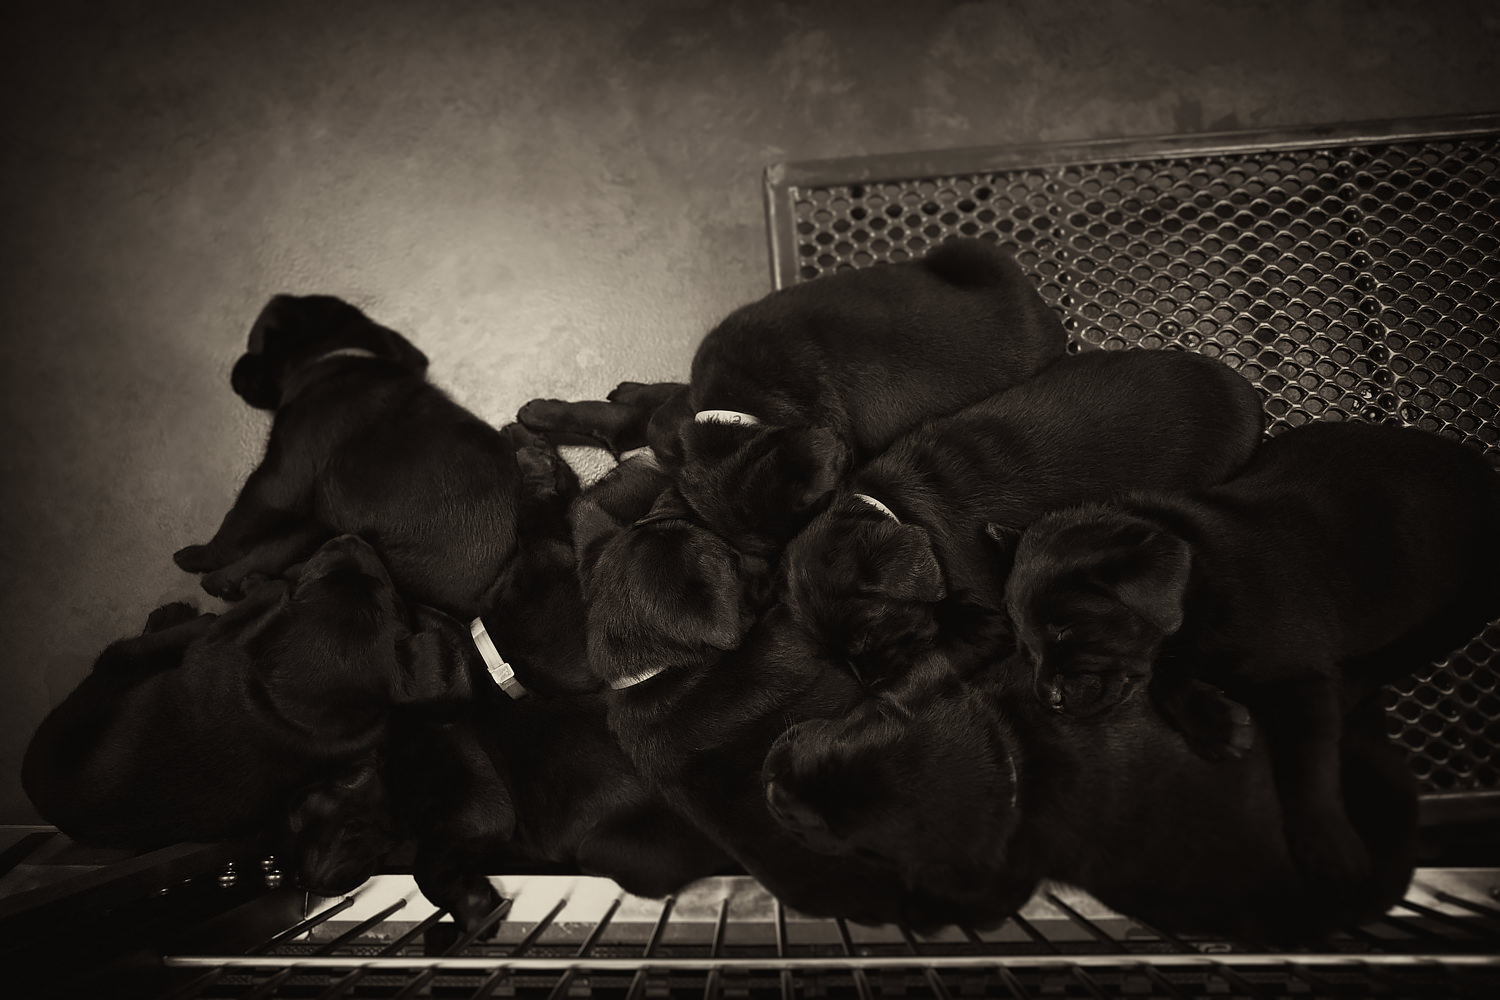 A pile of ten Guiding Eyes black lab puppies.